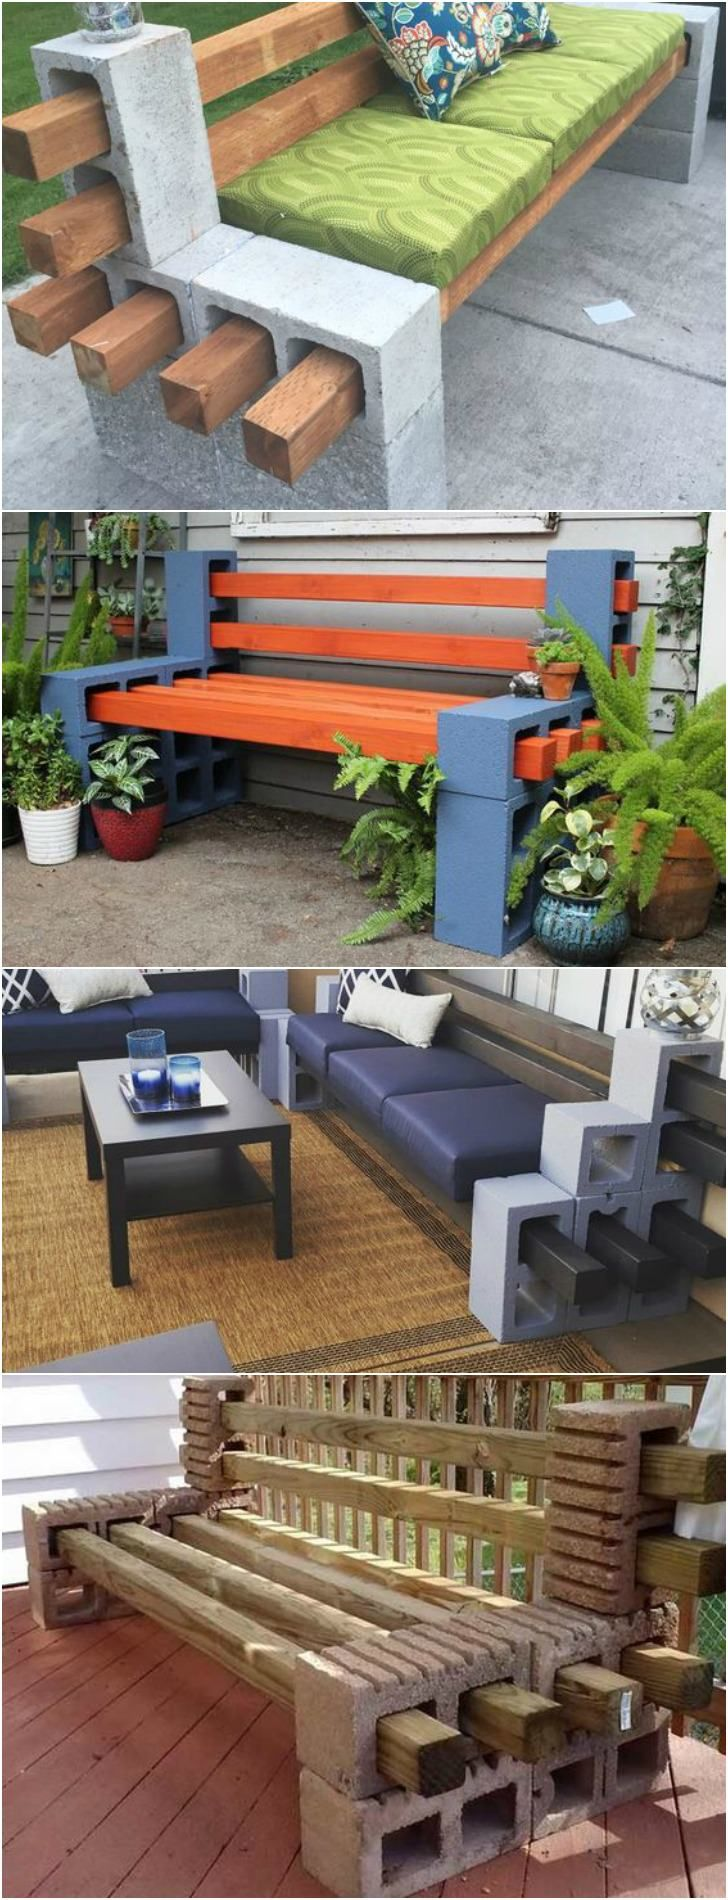 Design Outdoor Patio Ideas best 25 outdoor patio designs ideas on pinterest decks how to make a bench from cinder blocks 10 amazing inspire you